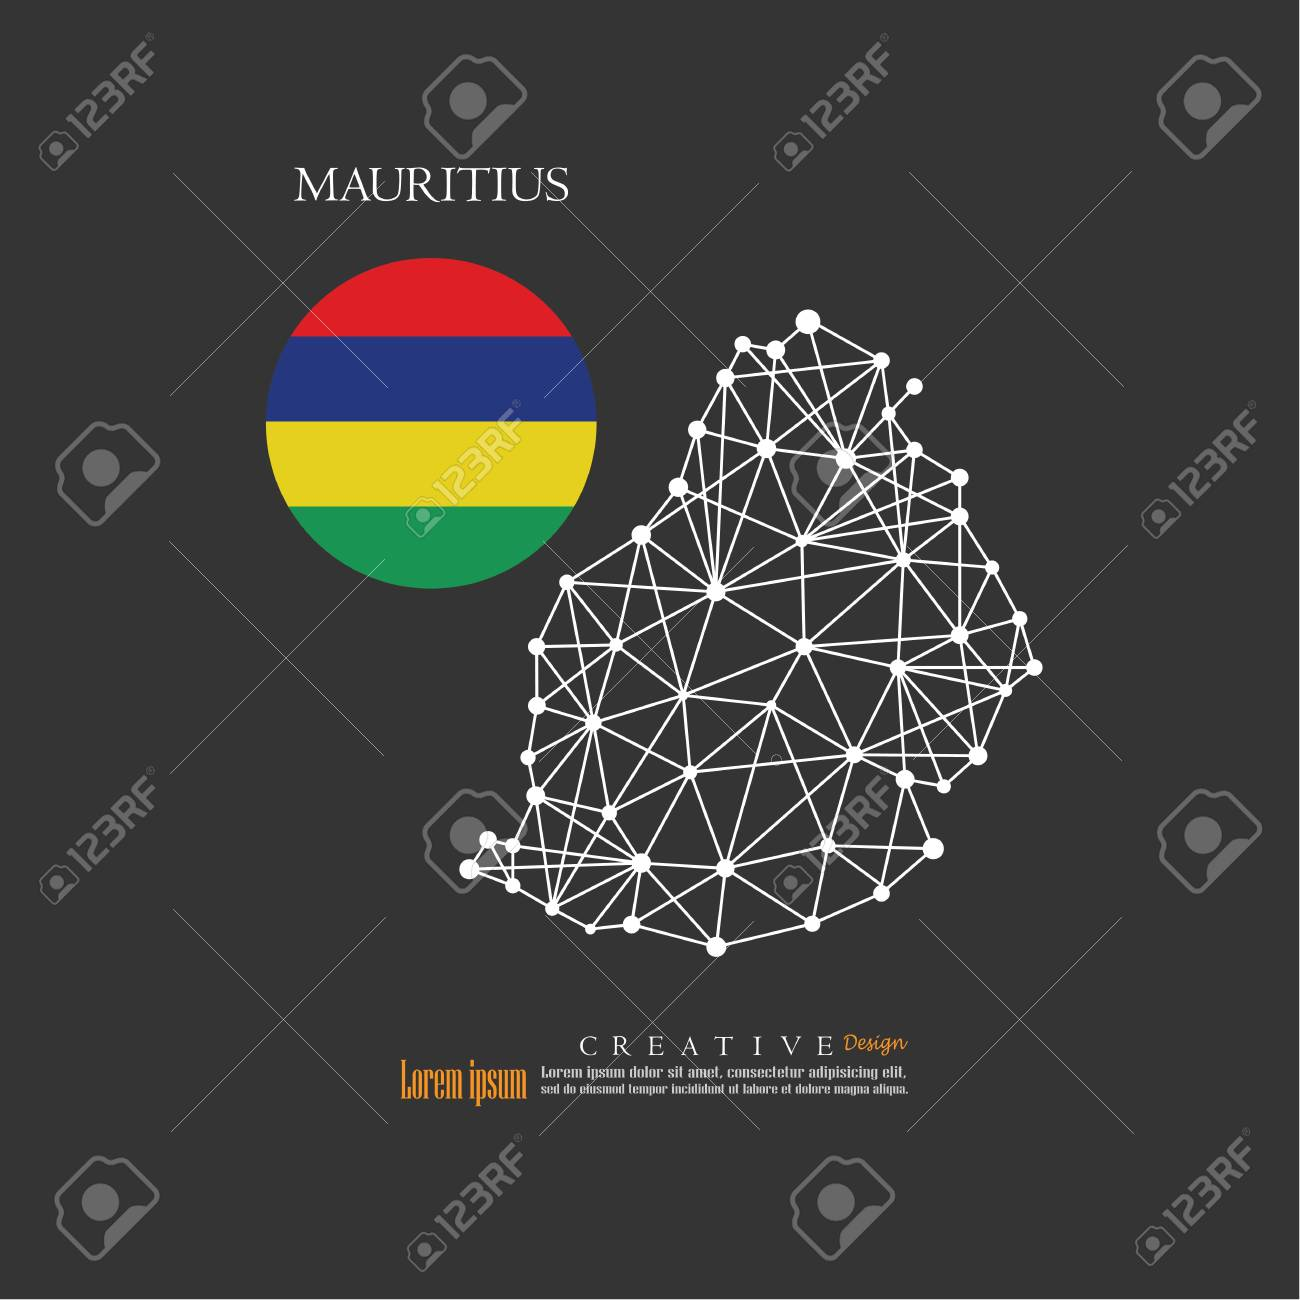 Outline map of Mauritius with nation flag.vector illustration.